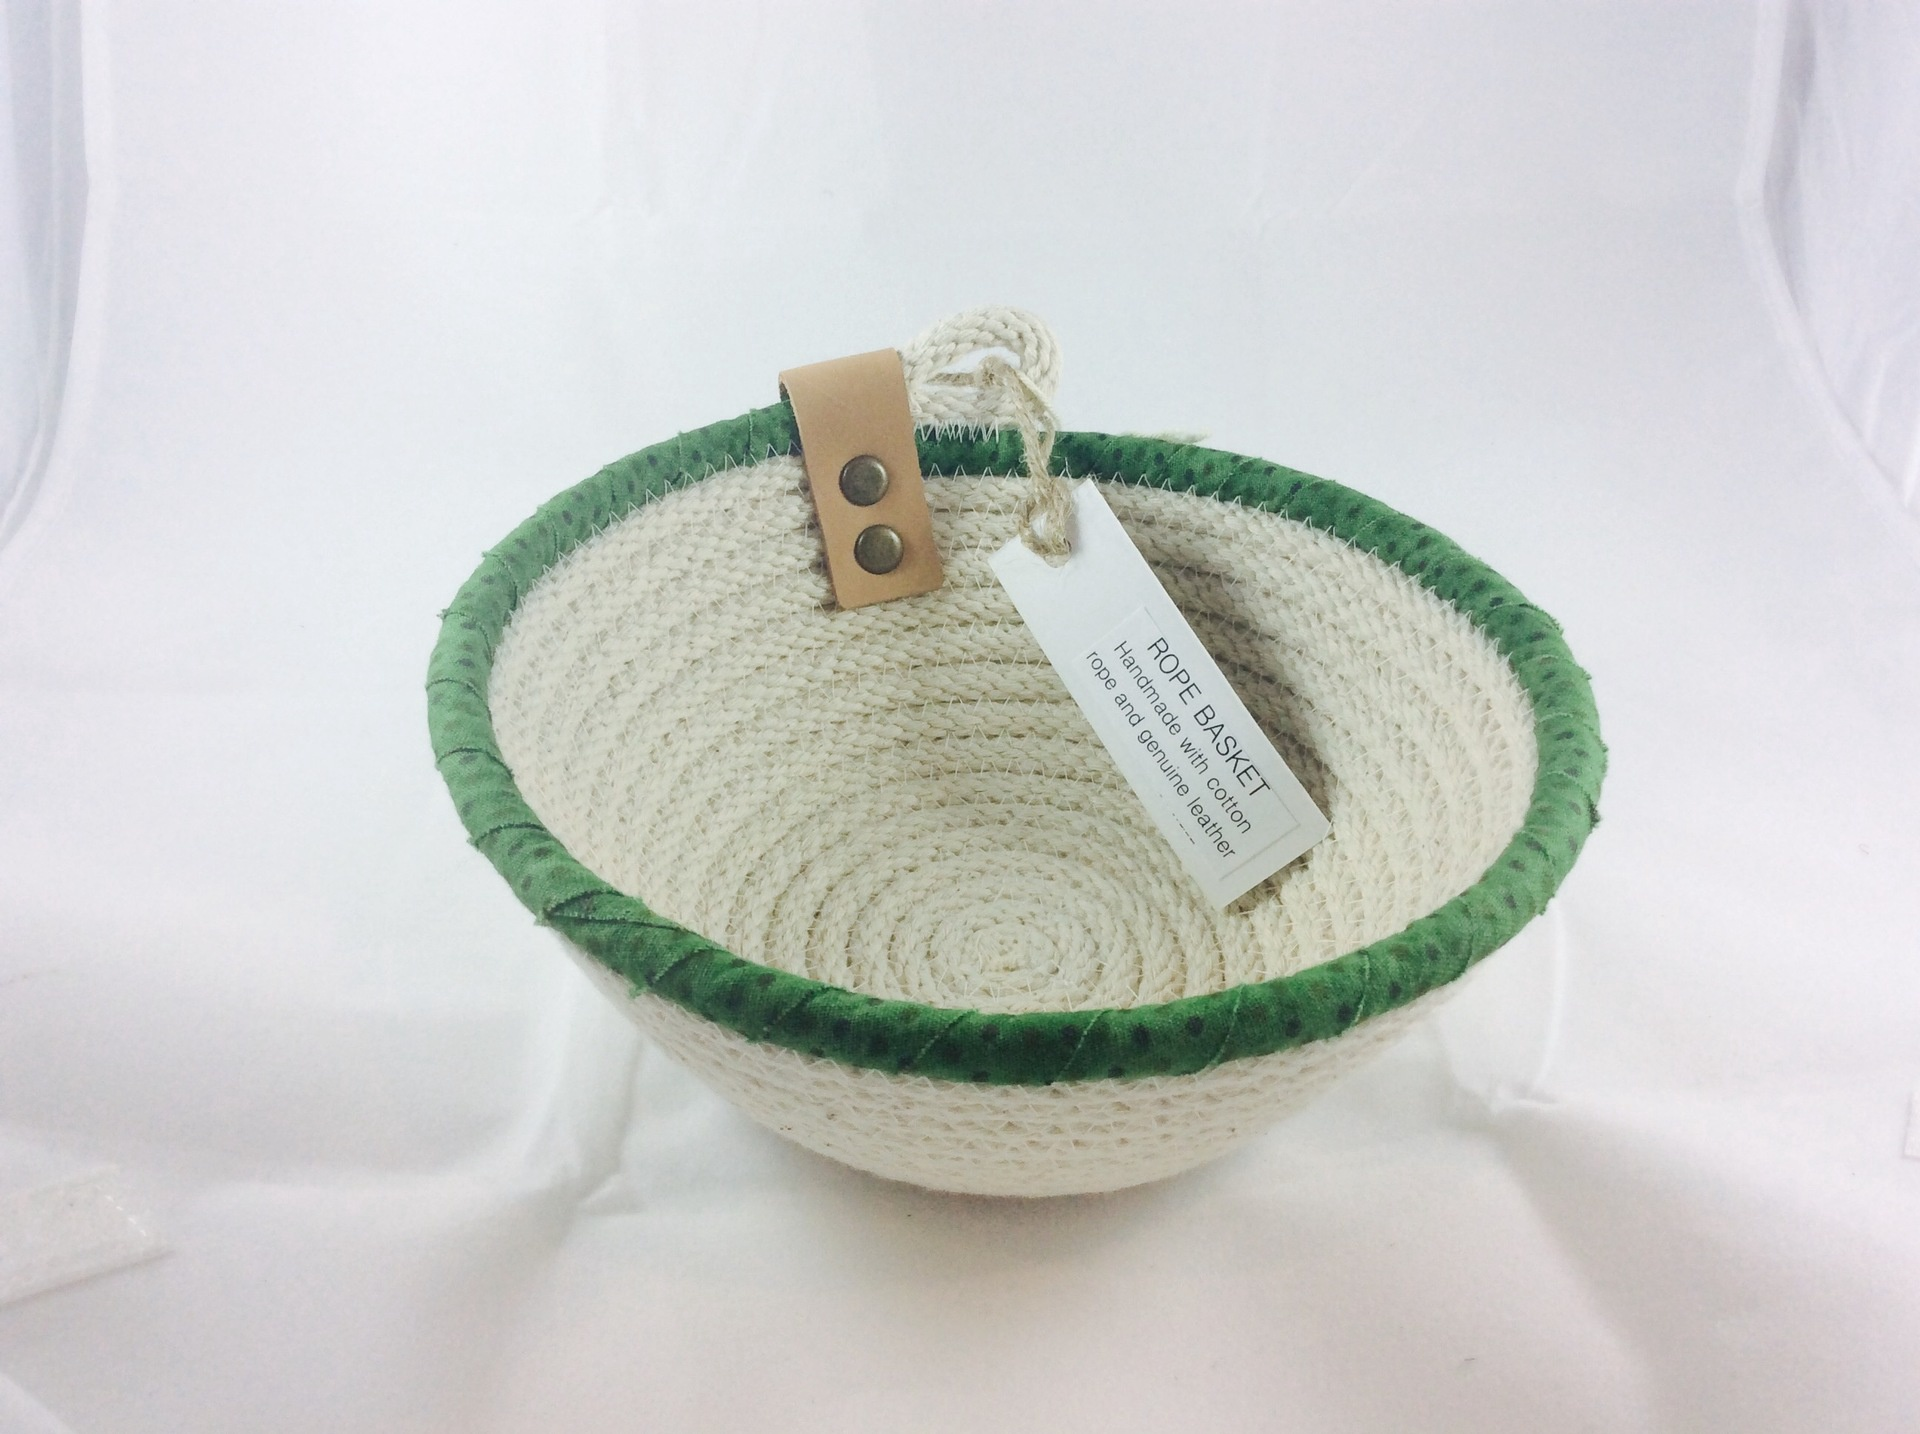 Green Trim Rope Basket - 17 cm